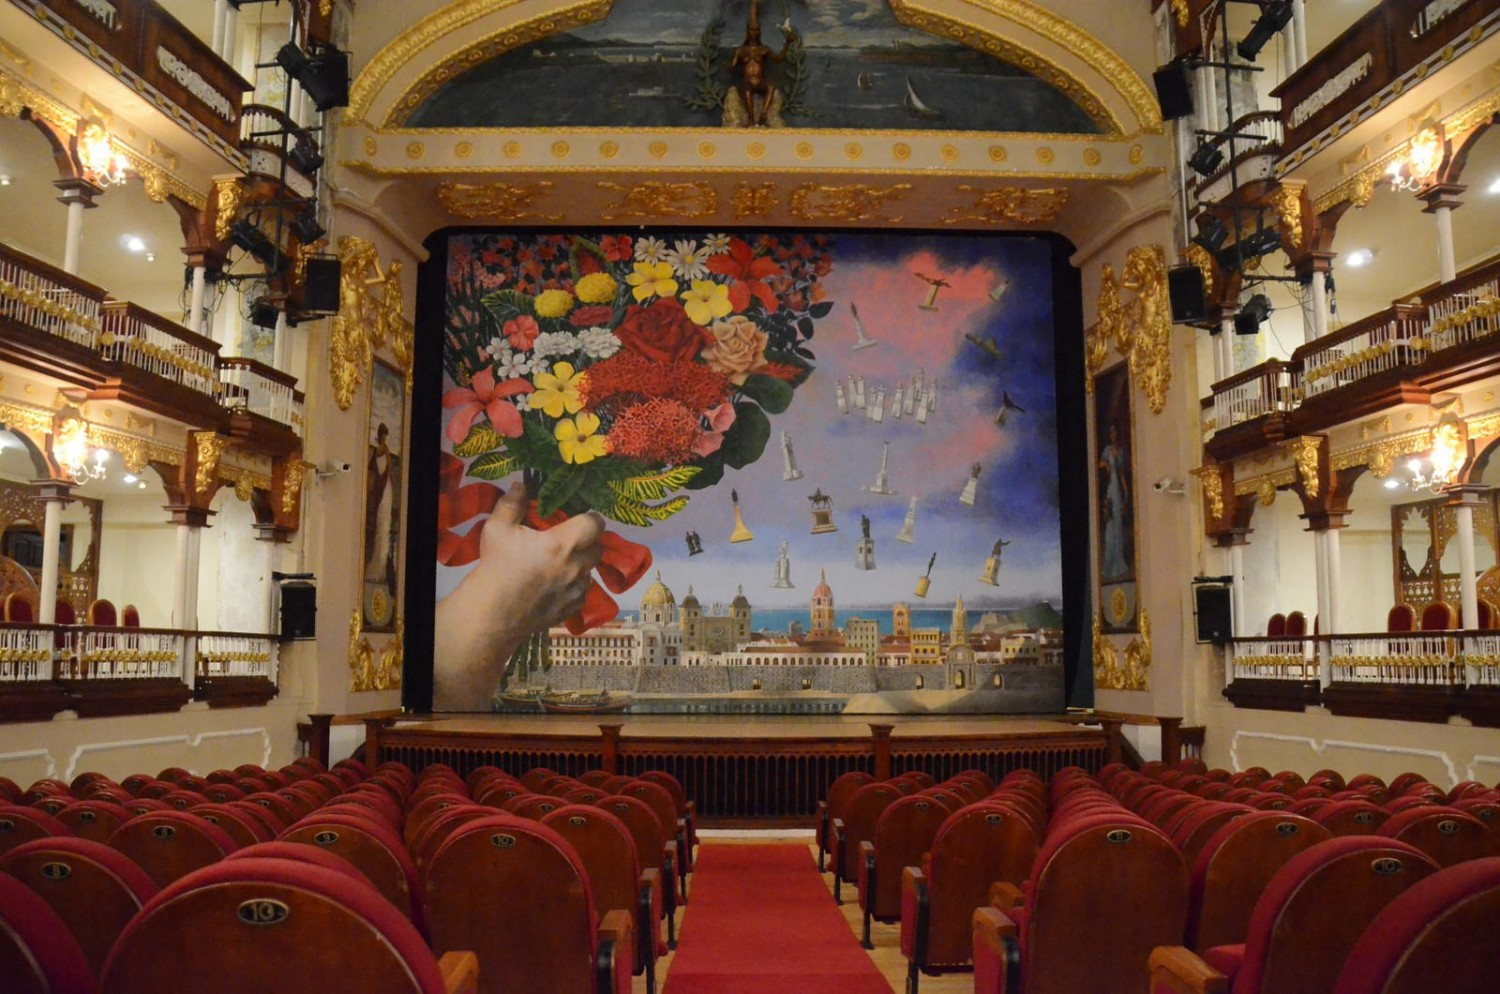 Grau mural and seating from the first floor, teatro heredia, cartagena, arts and culture